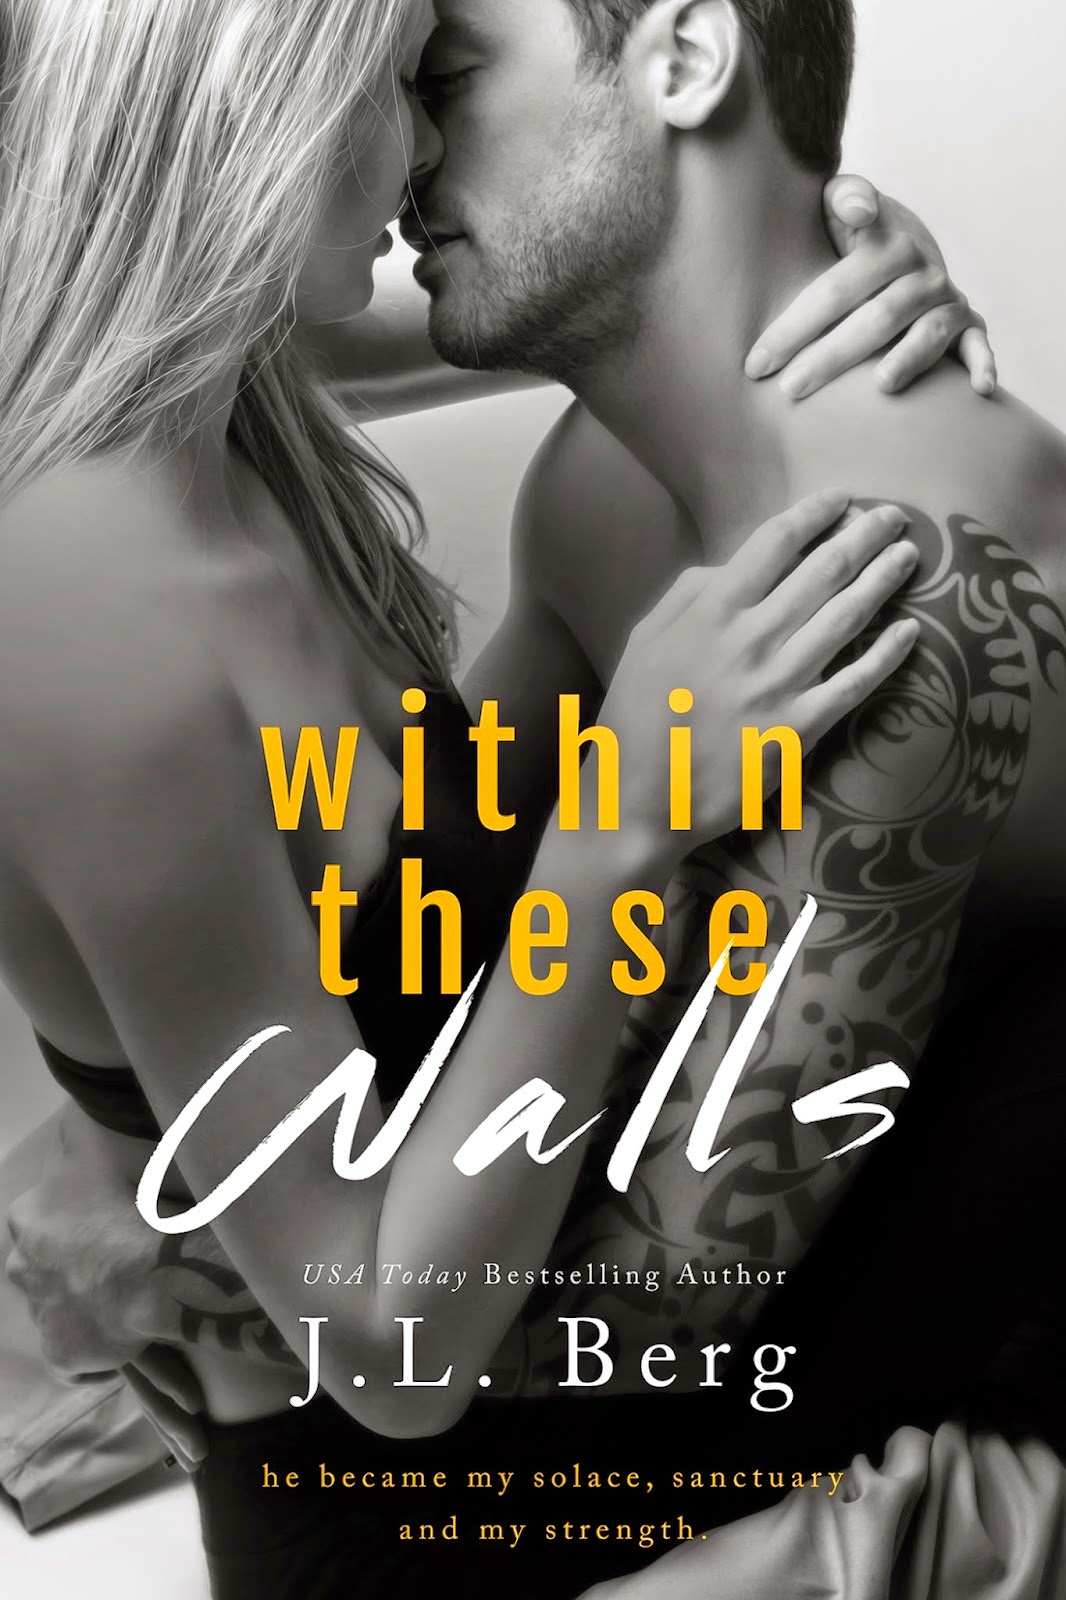 http://readsallthebooks.blogspot.com/2014/08/within-these-walls-review.html